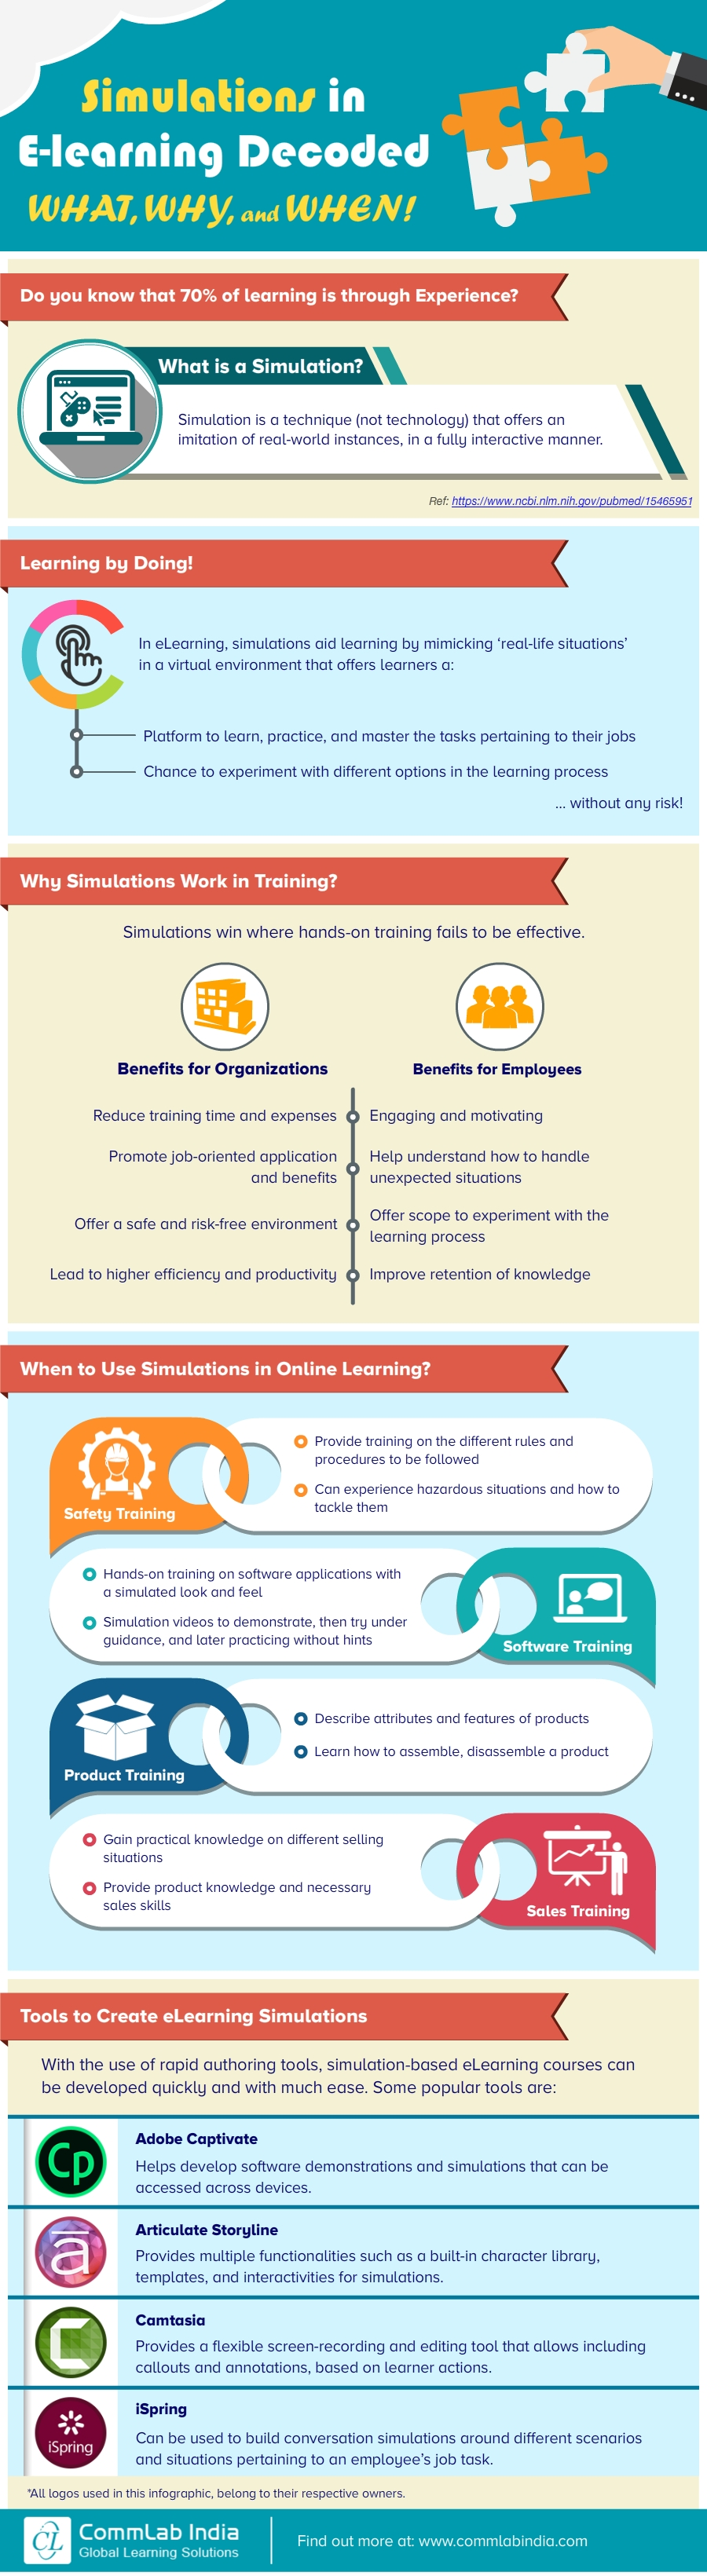 Simulations in E-learning Decoded: What, Why, and When! [Infographic]